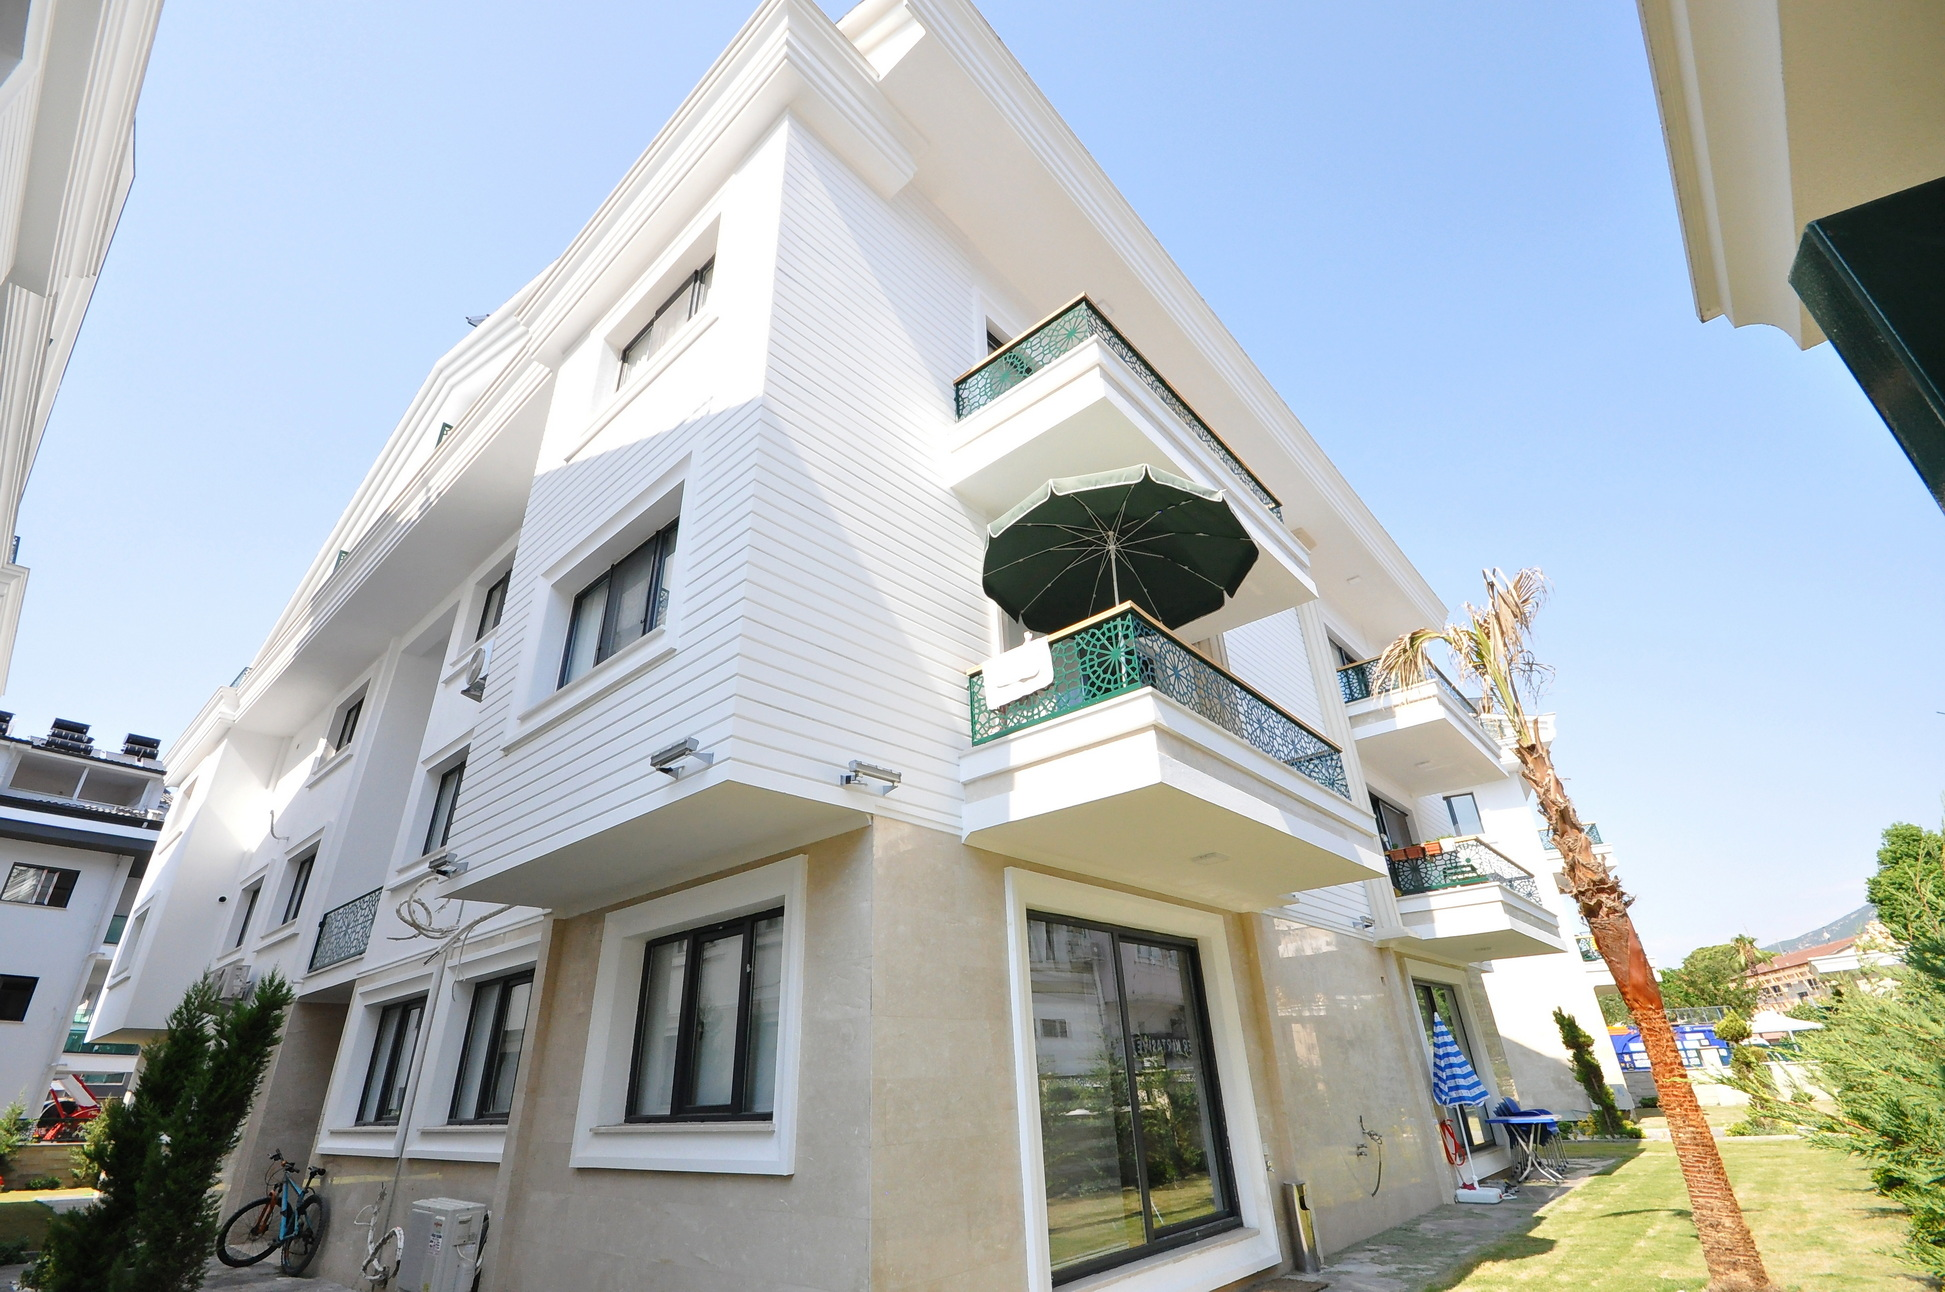 Brand New 4 Bedroom Duplex Apartment close to the Harbour and Promenade